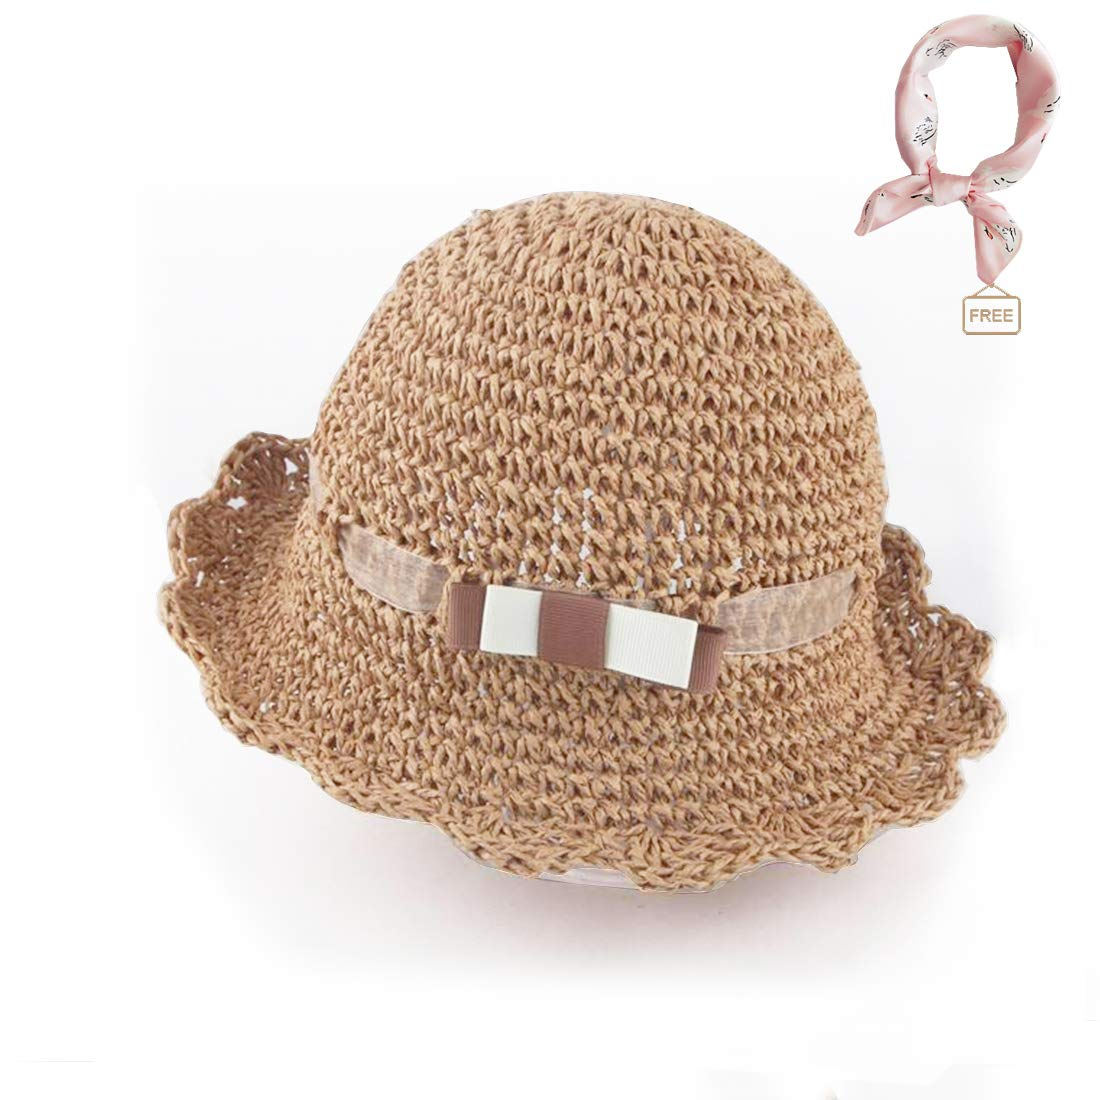 Floppy Foldable Beach Sun Protection Hat with Wide Brim//Handmade Straw Hat for Little Girl Baby Girls Summer Straw Hat